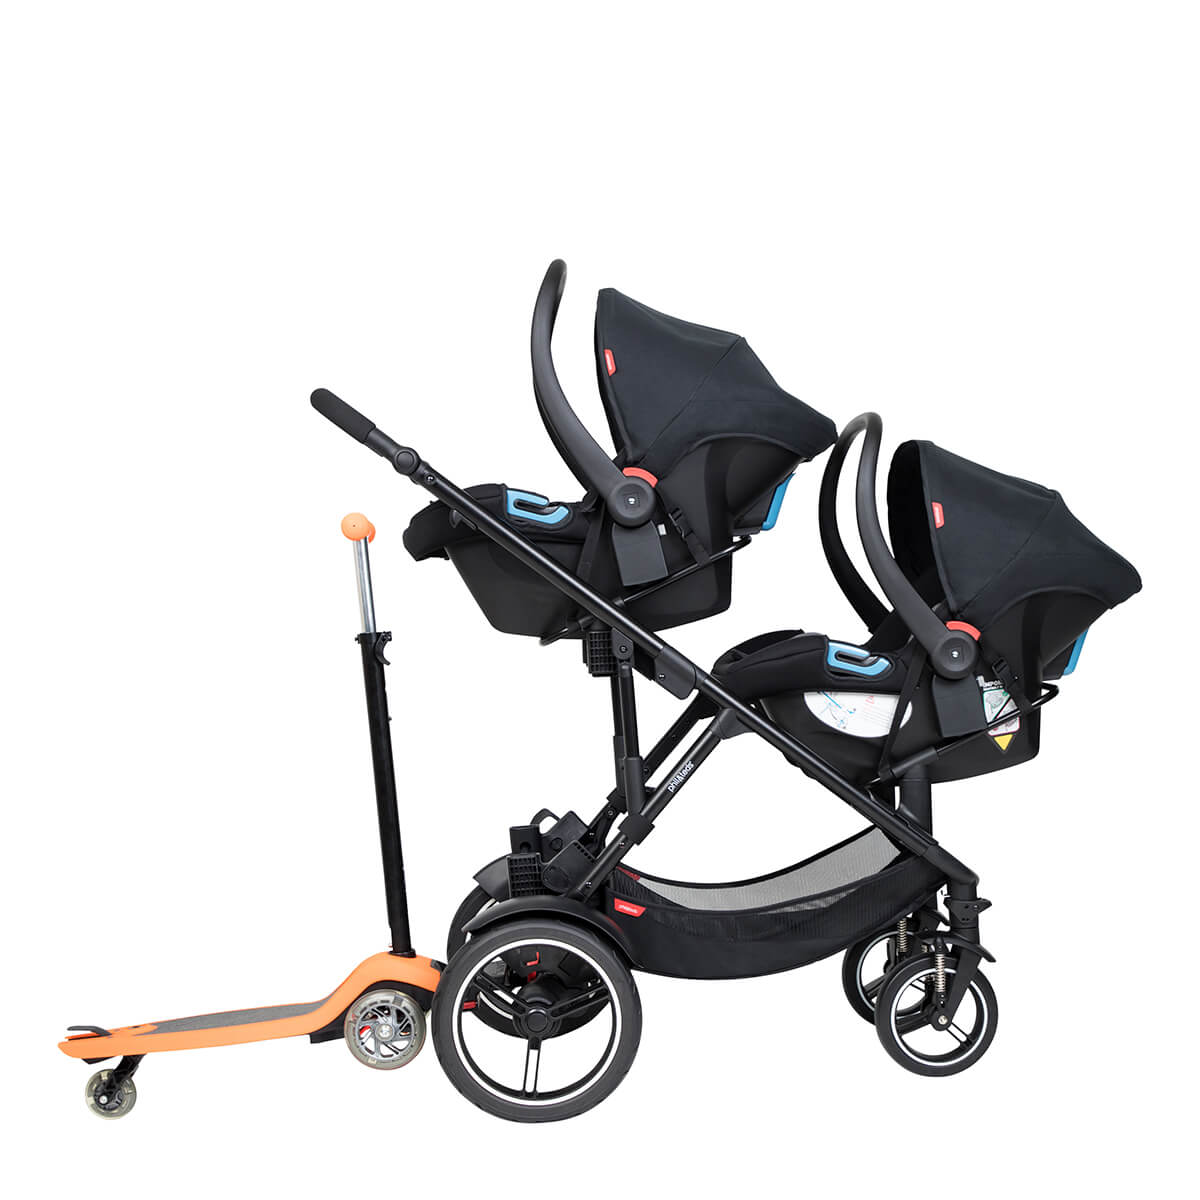 https://cdn.accentuate.io/4381204447309/19466498146498/philteds-voyager-buggy-with-double-travel-systems-and-freerider-stroller-board-in-the-rear-v1626485502740.jpg?1200x1200